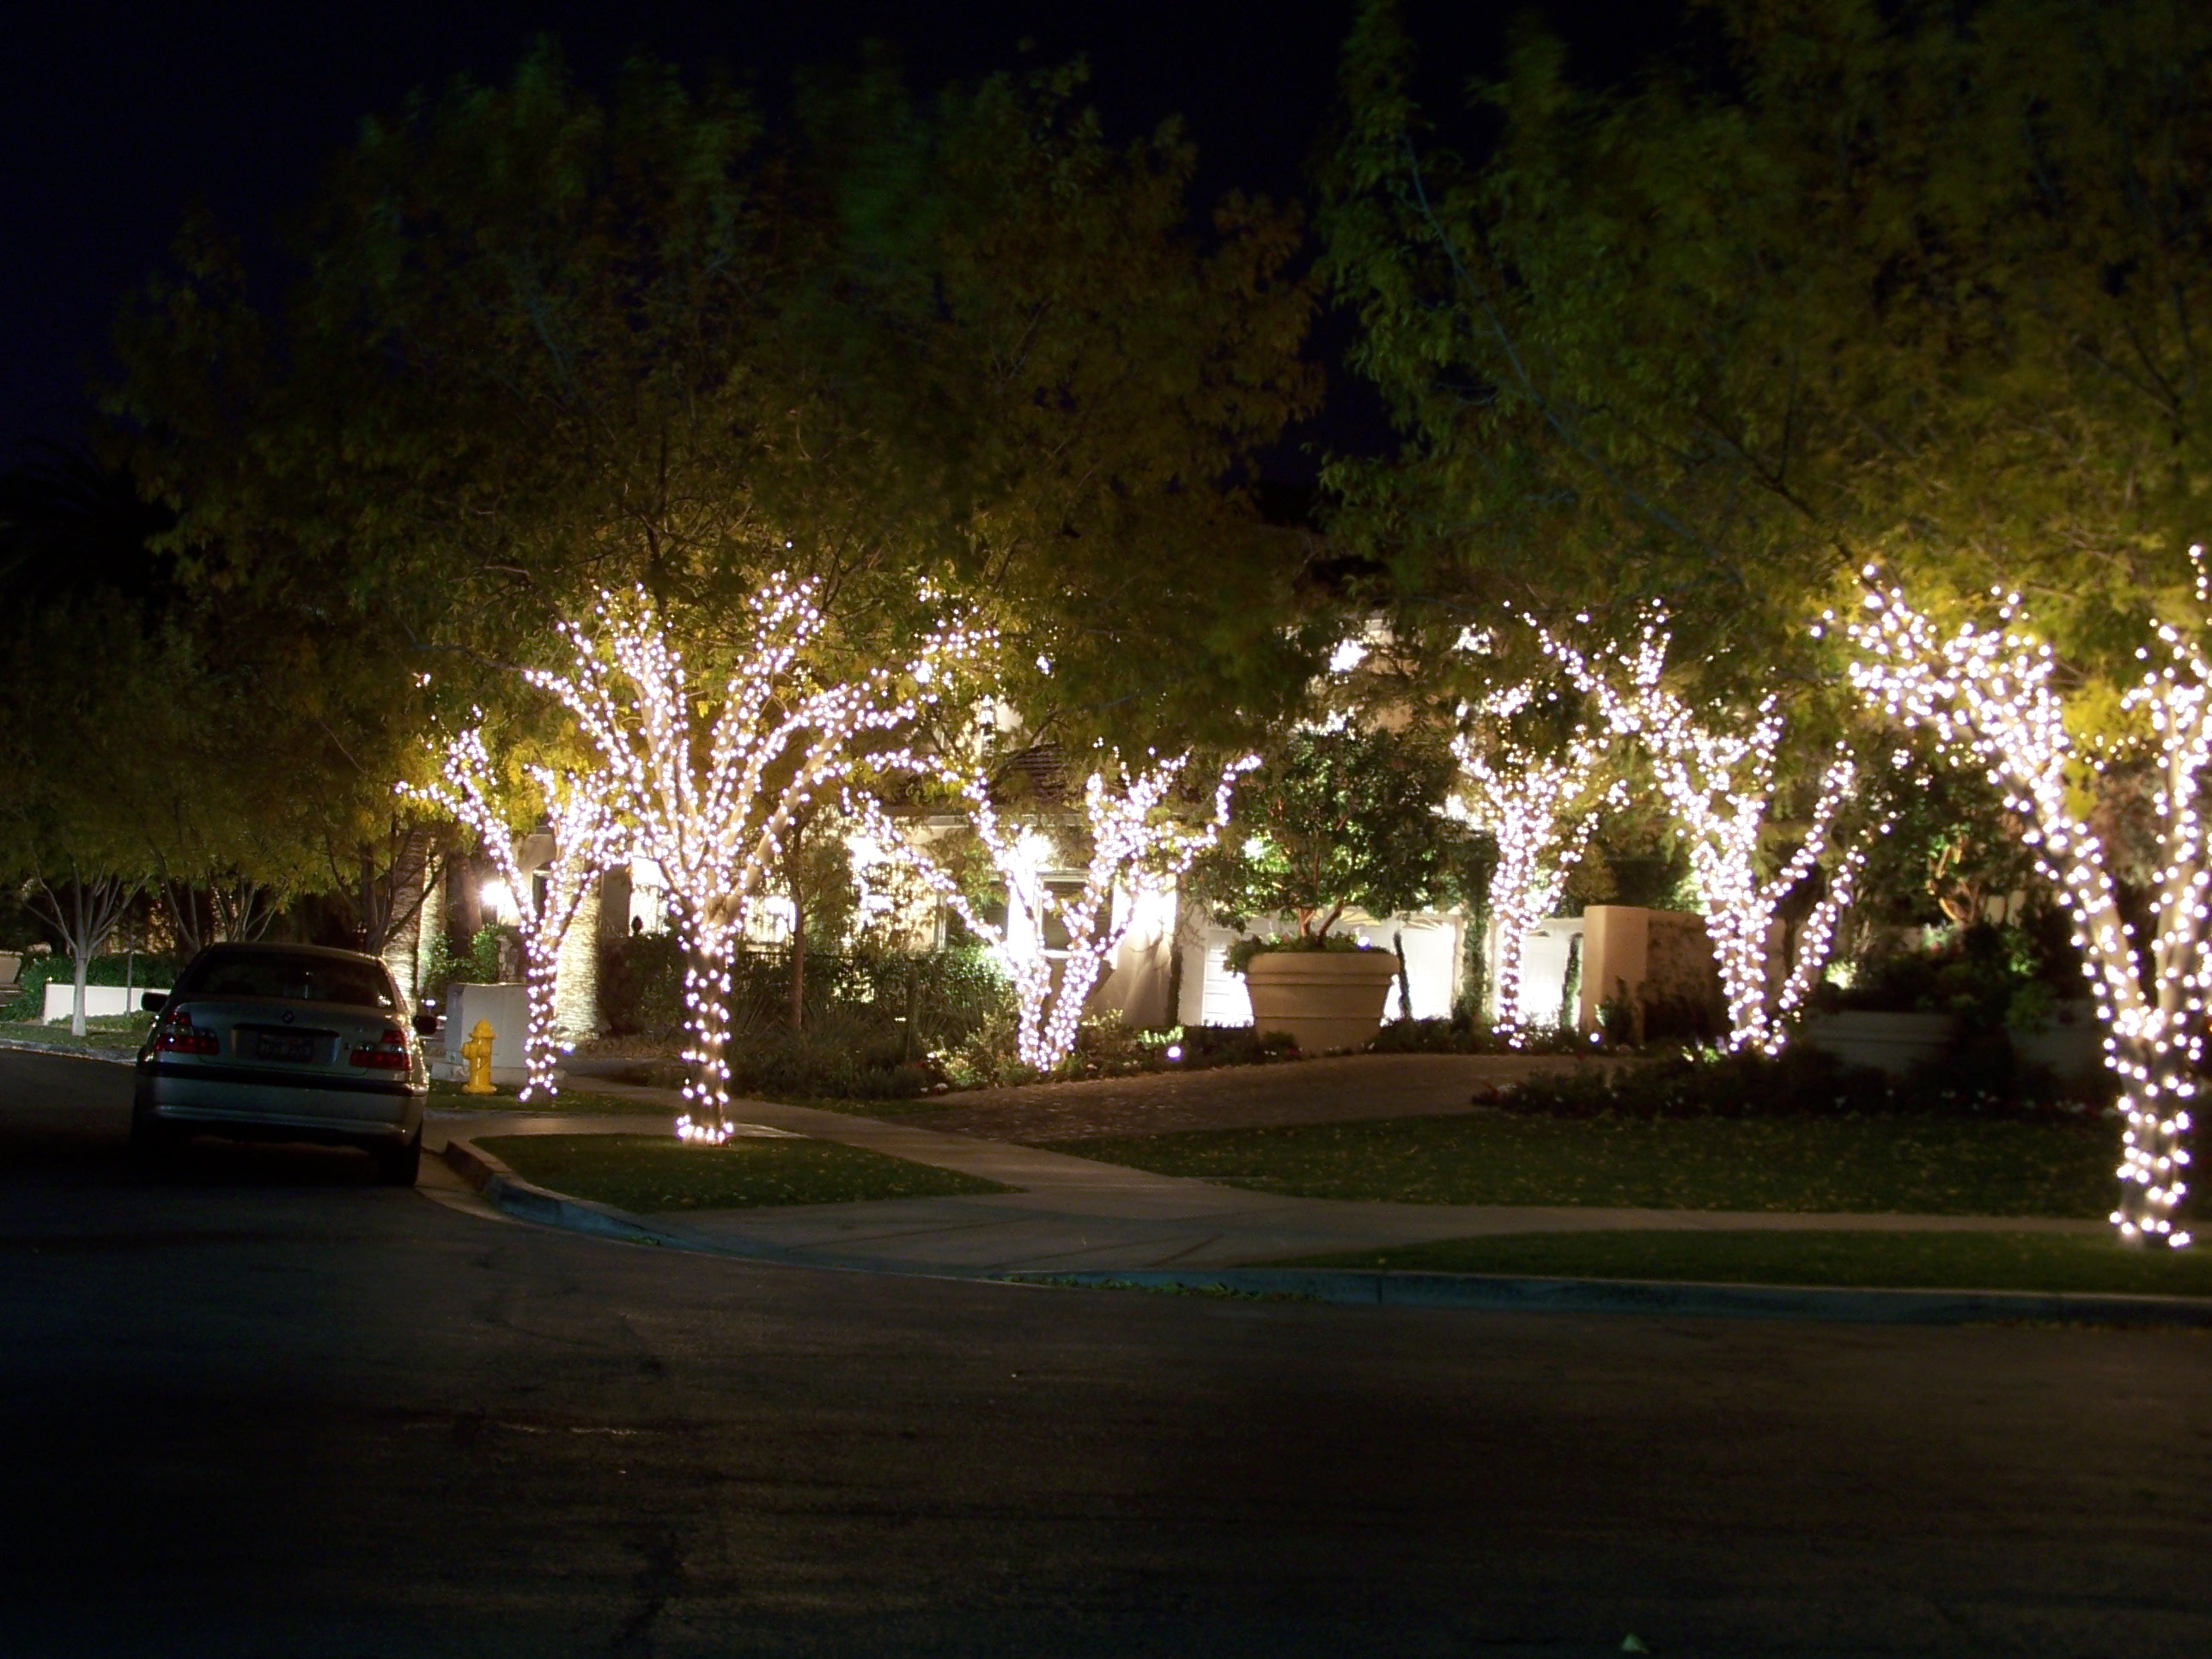 HolidayIllumination.com – Christmas and Holiday Light Installation ...